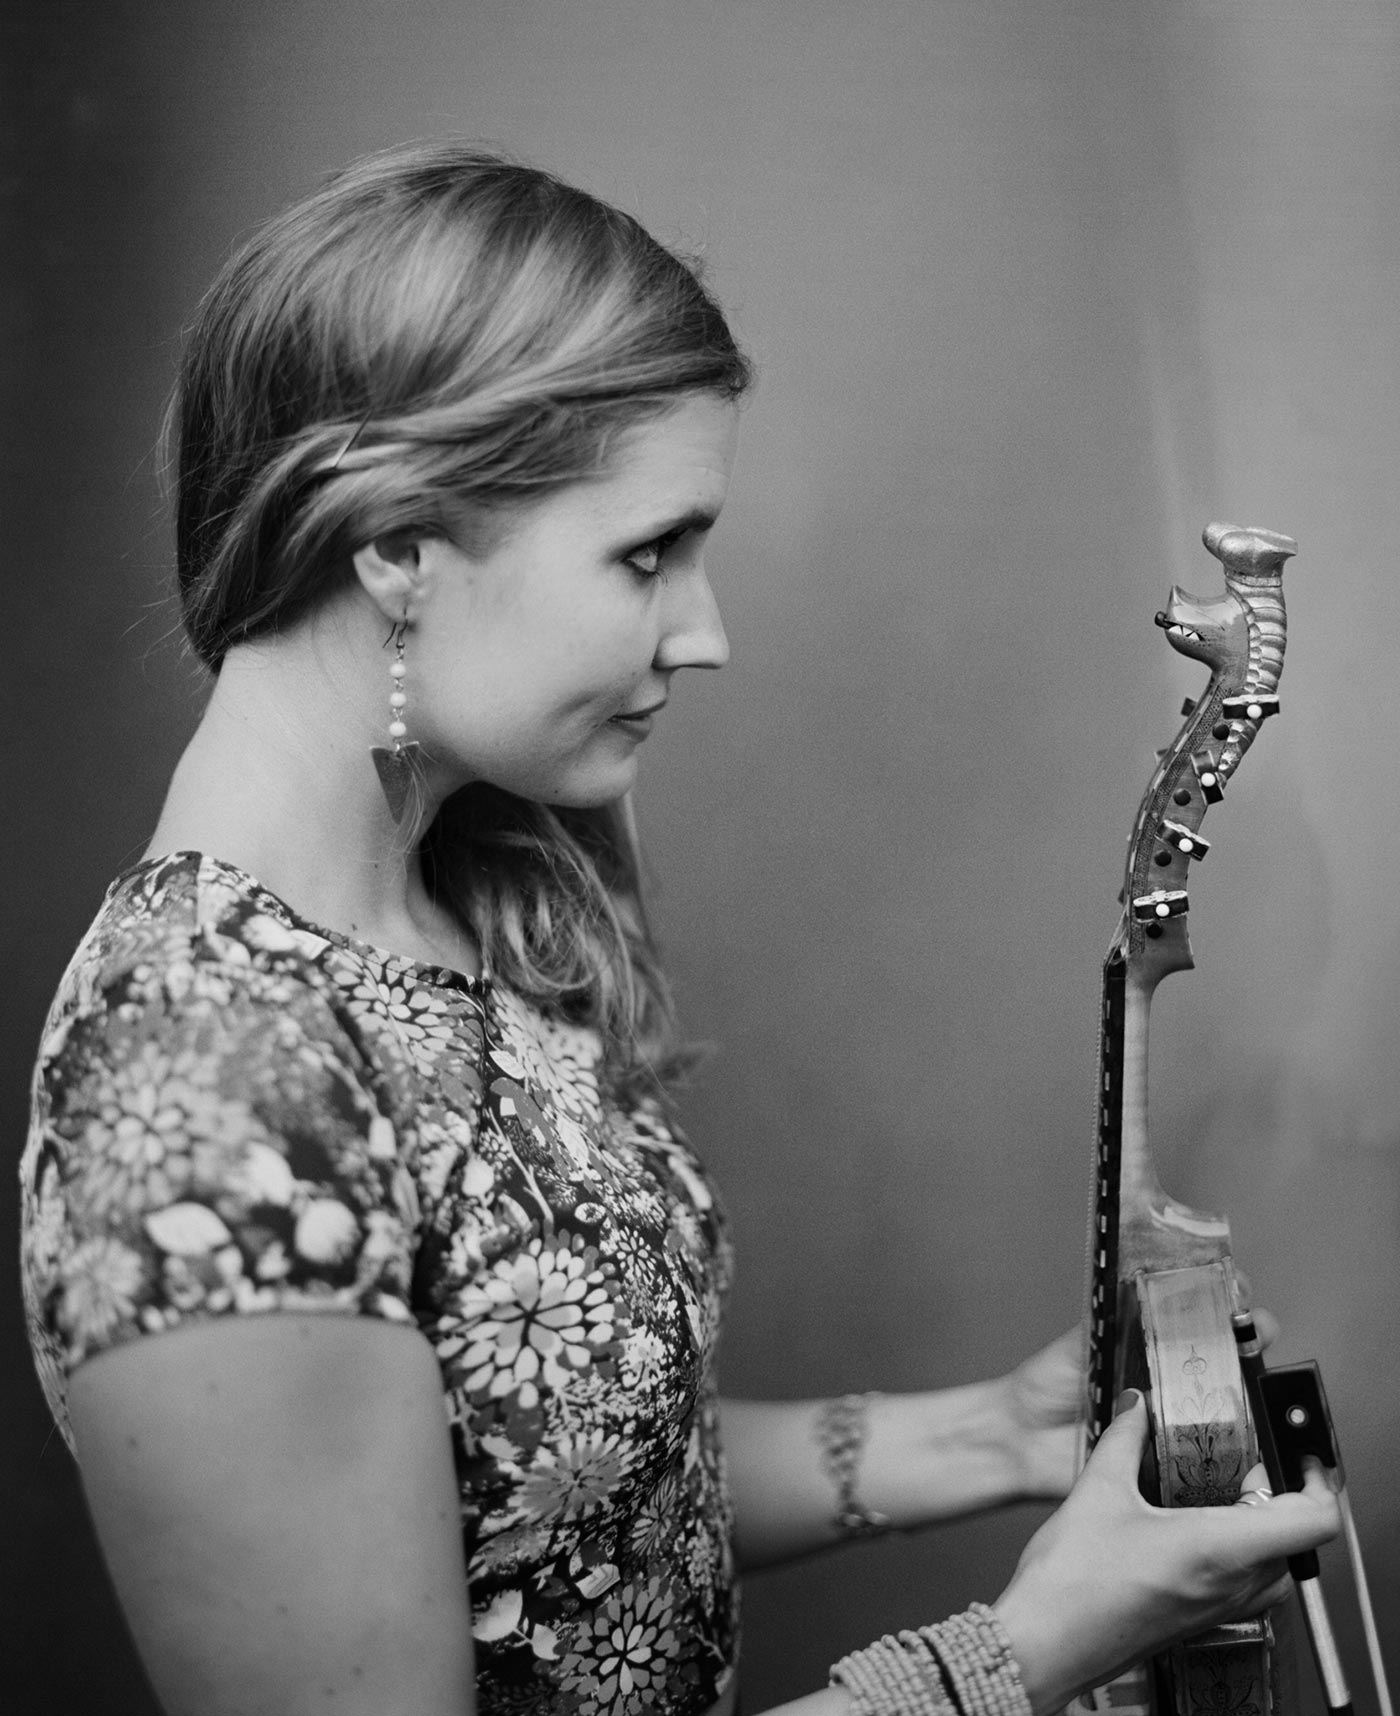 Rachel Nesvig looking at her Hardanger fiddle